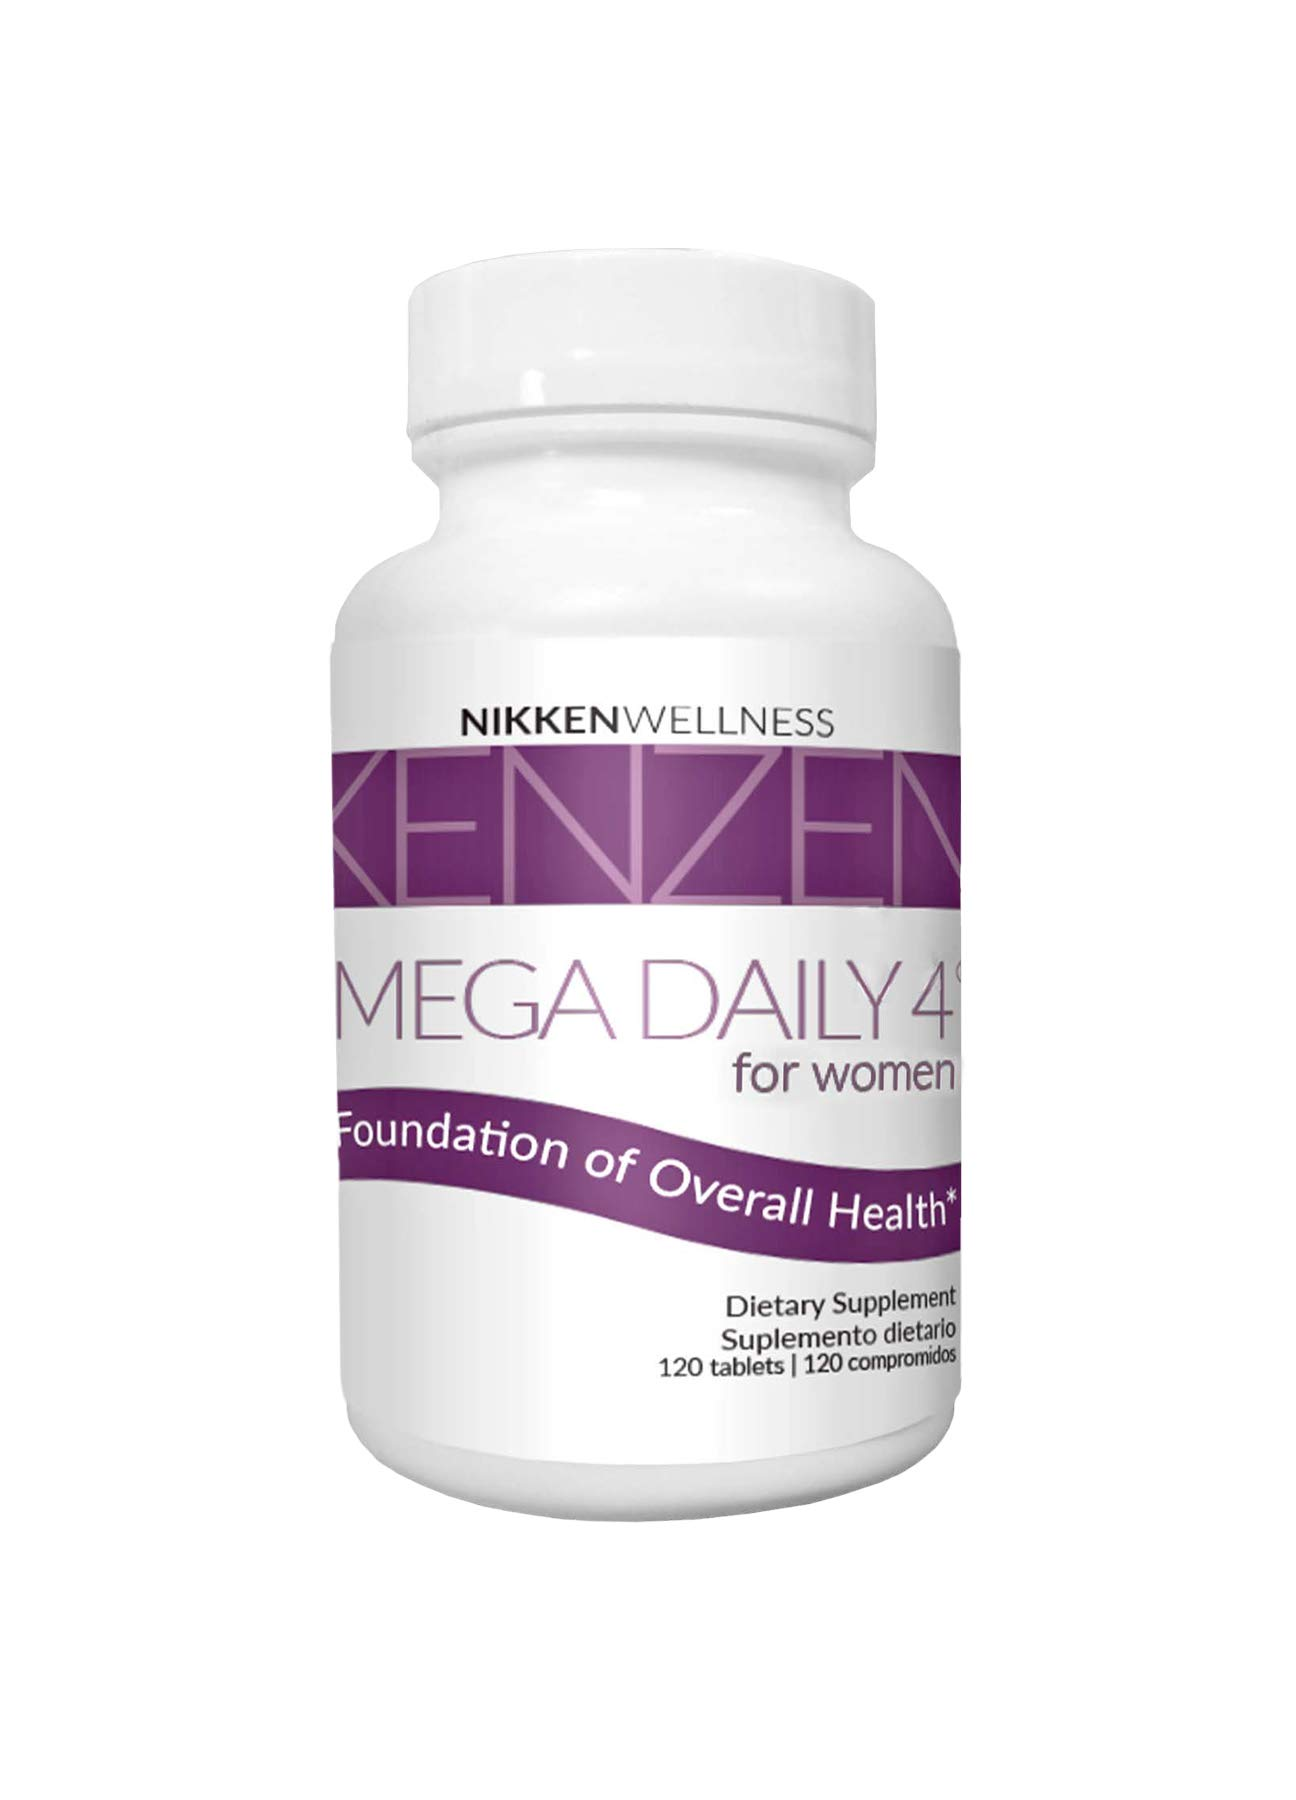 Nikken Kenzen Mega Daily 4 for Women - Water-Soluble and Fat-Soluble Antioxidants - Formulated with Organic Vegetables and Blend of Traditional Herbs Helps Support Healthy Body Function - 120 Tablets